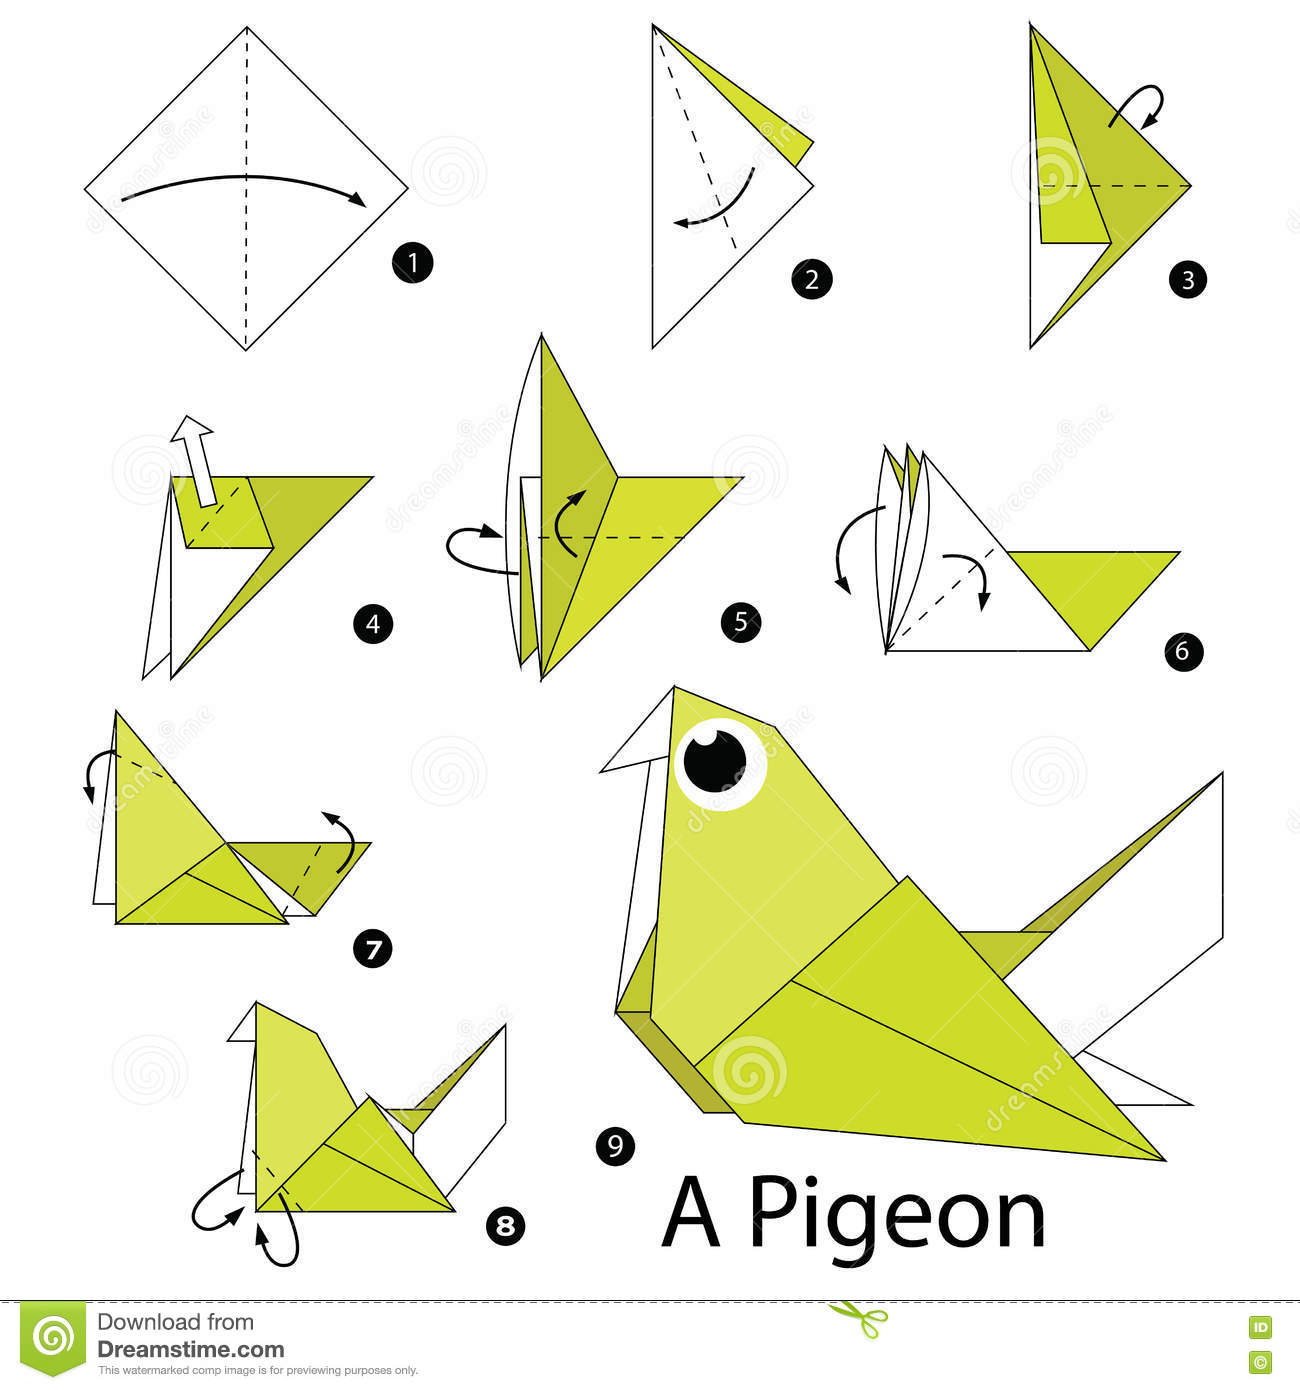 Step by step instructions how to make origami a pigeon - Papiroflexia paso a paso ...